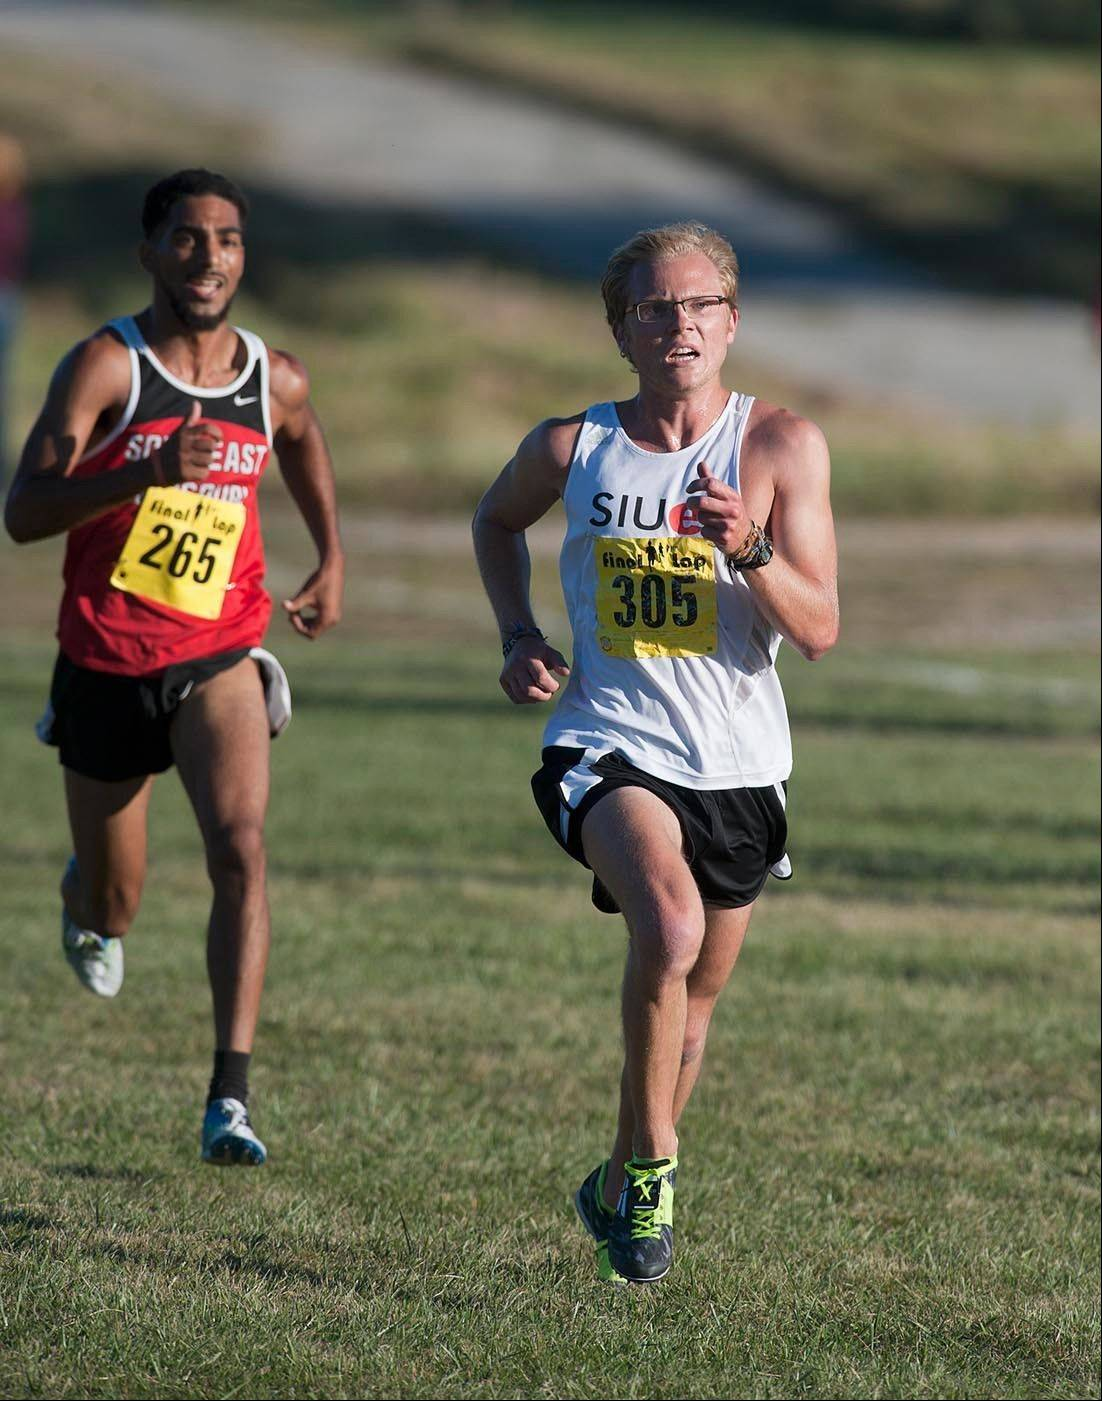 Burlington Central graduate Clint Kliem, now a sophomore at SIU-Edwardsville, recently became the school's first all-Ohio Valley Conference cross country runner.